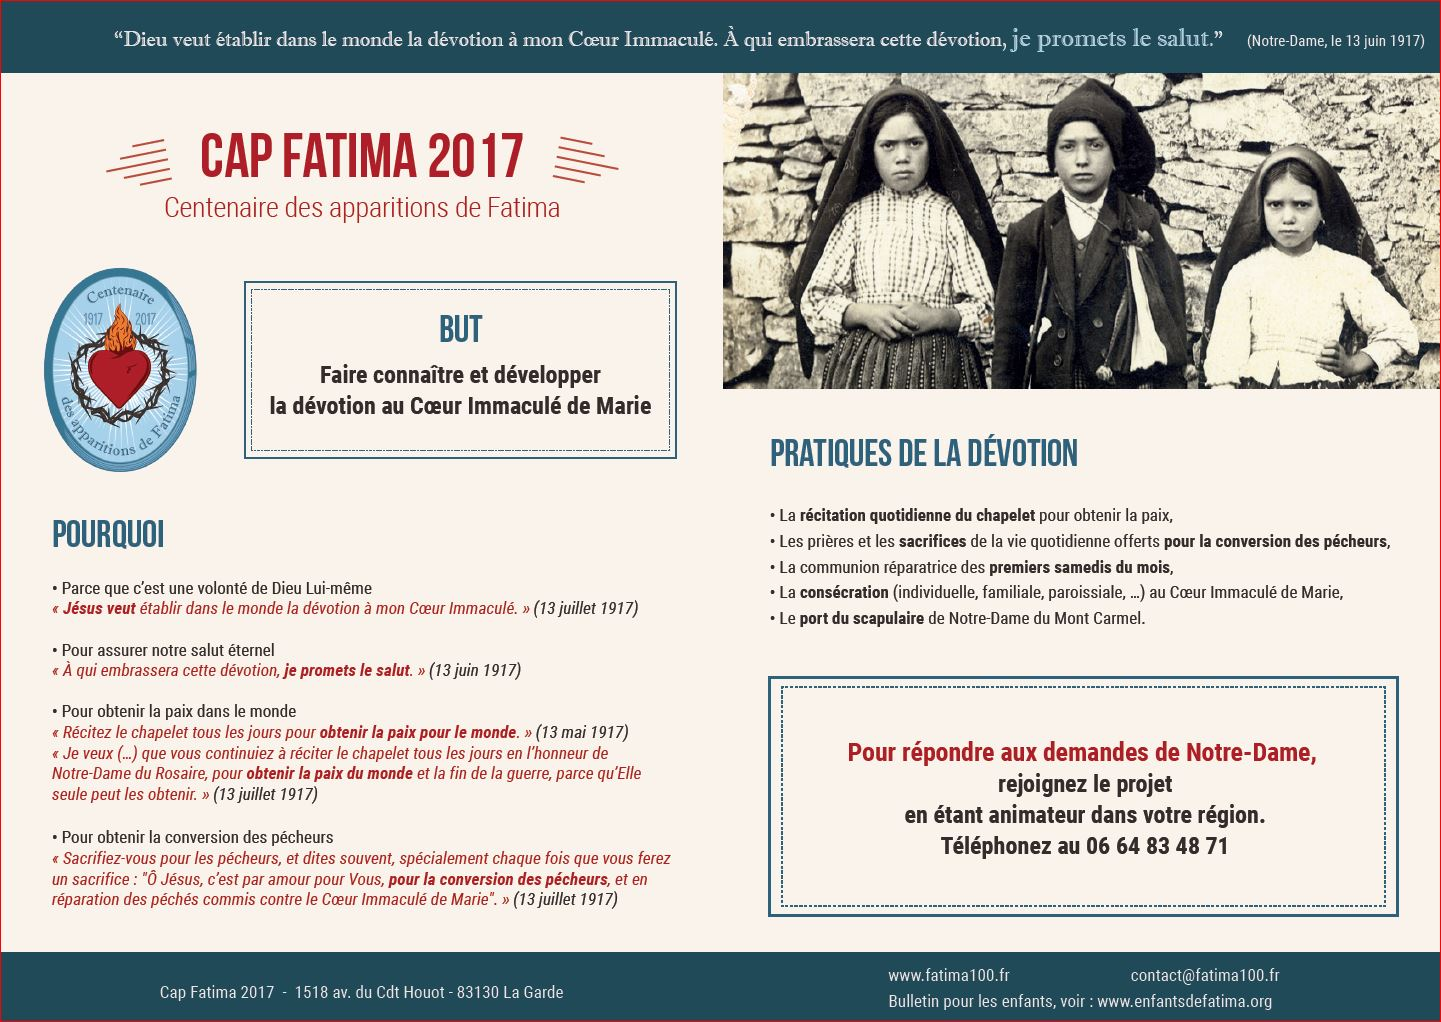 http://www.fatima100.fr/images/phocadownload/Images_diverses/Tract-p2.jpg